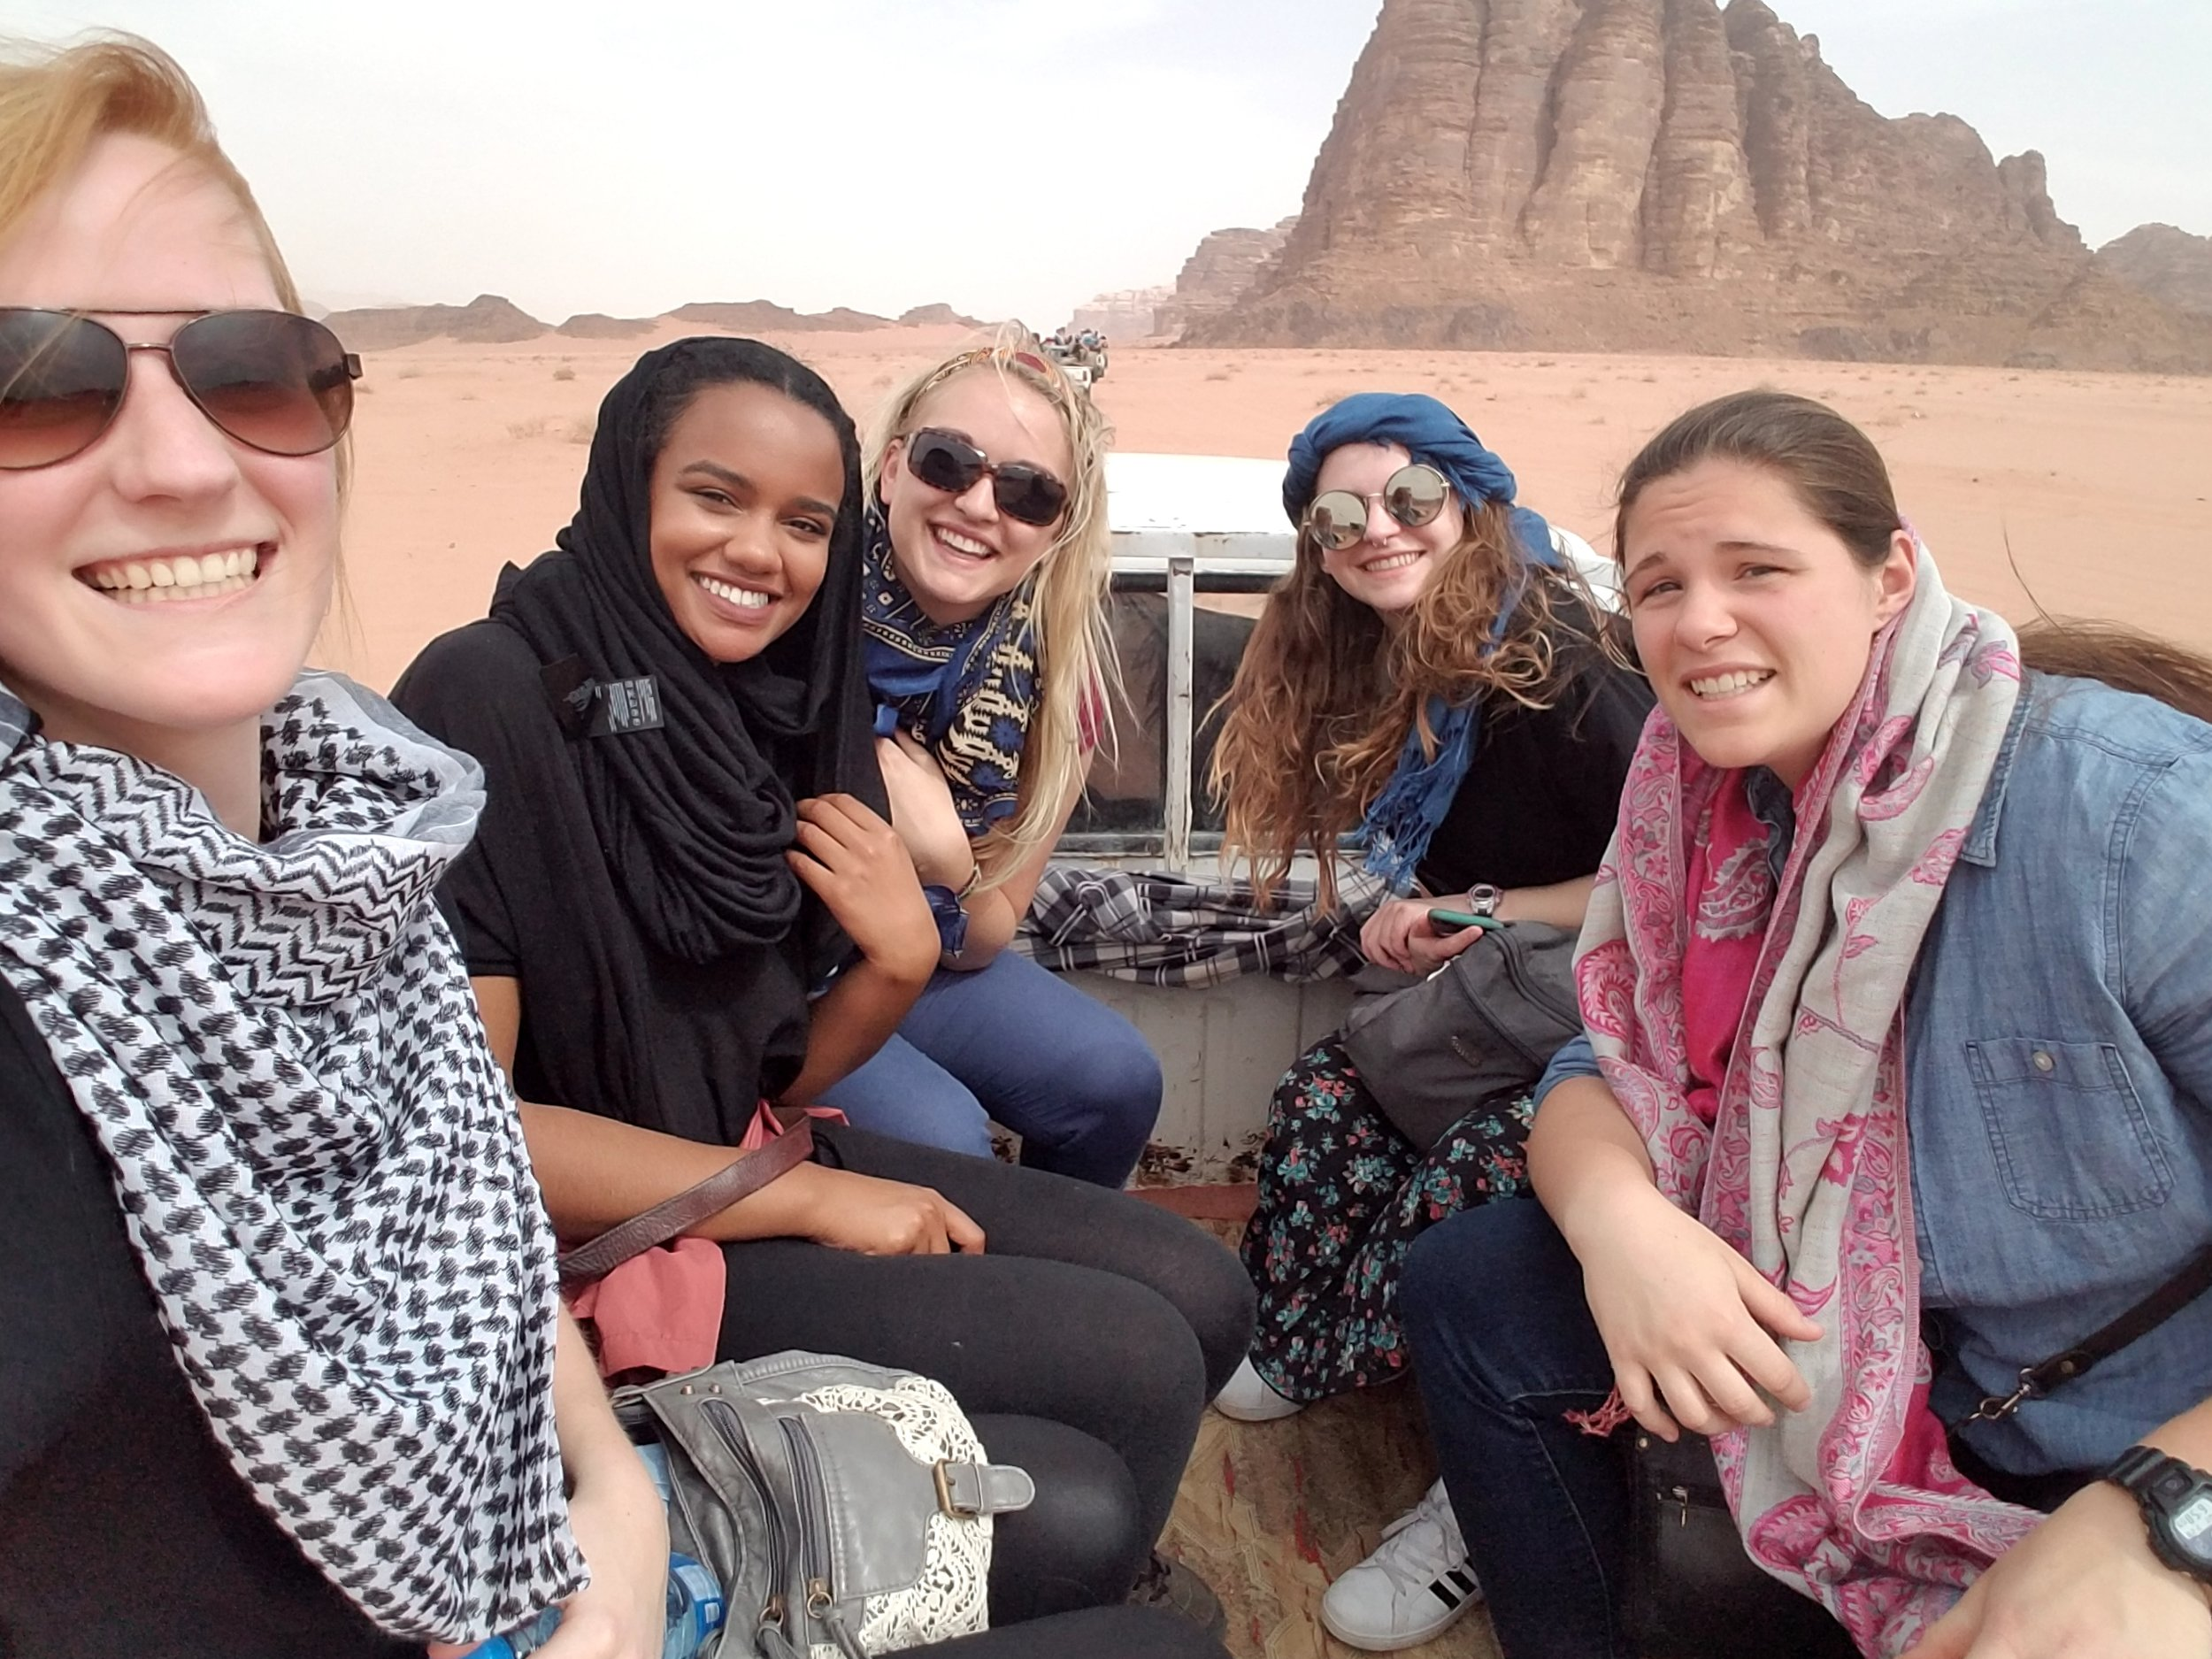 Exploring Wadi Rum with new friends! Photo credit: Zachman, 2018